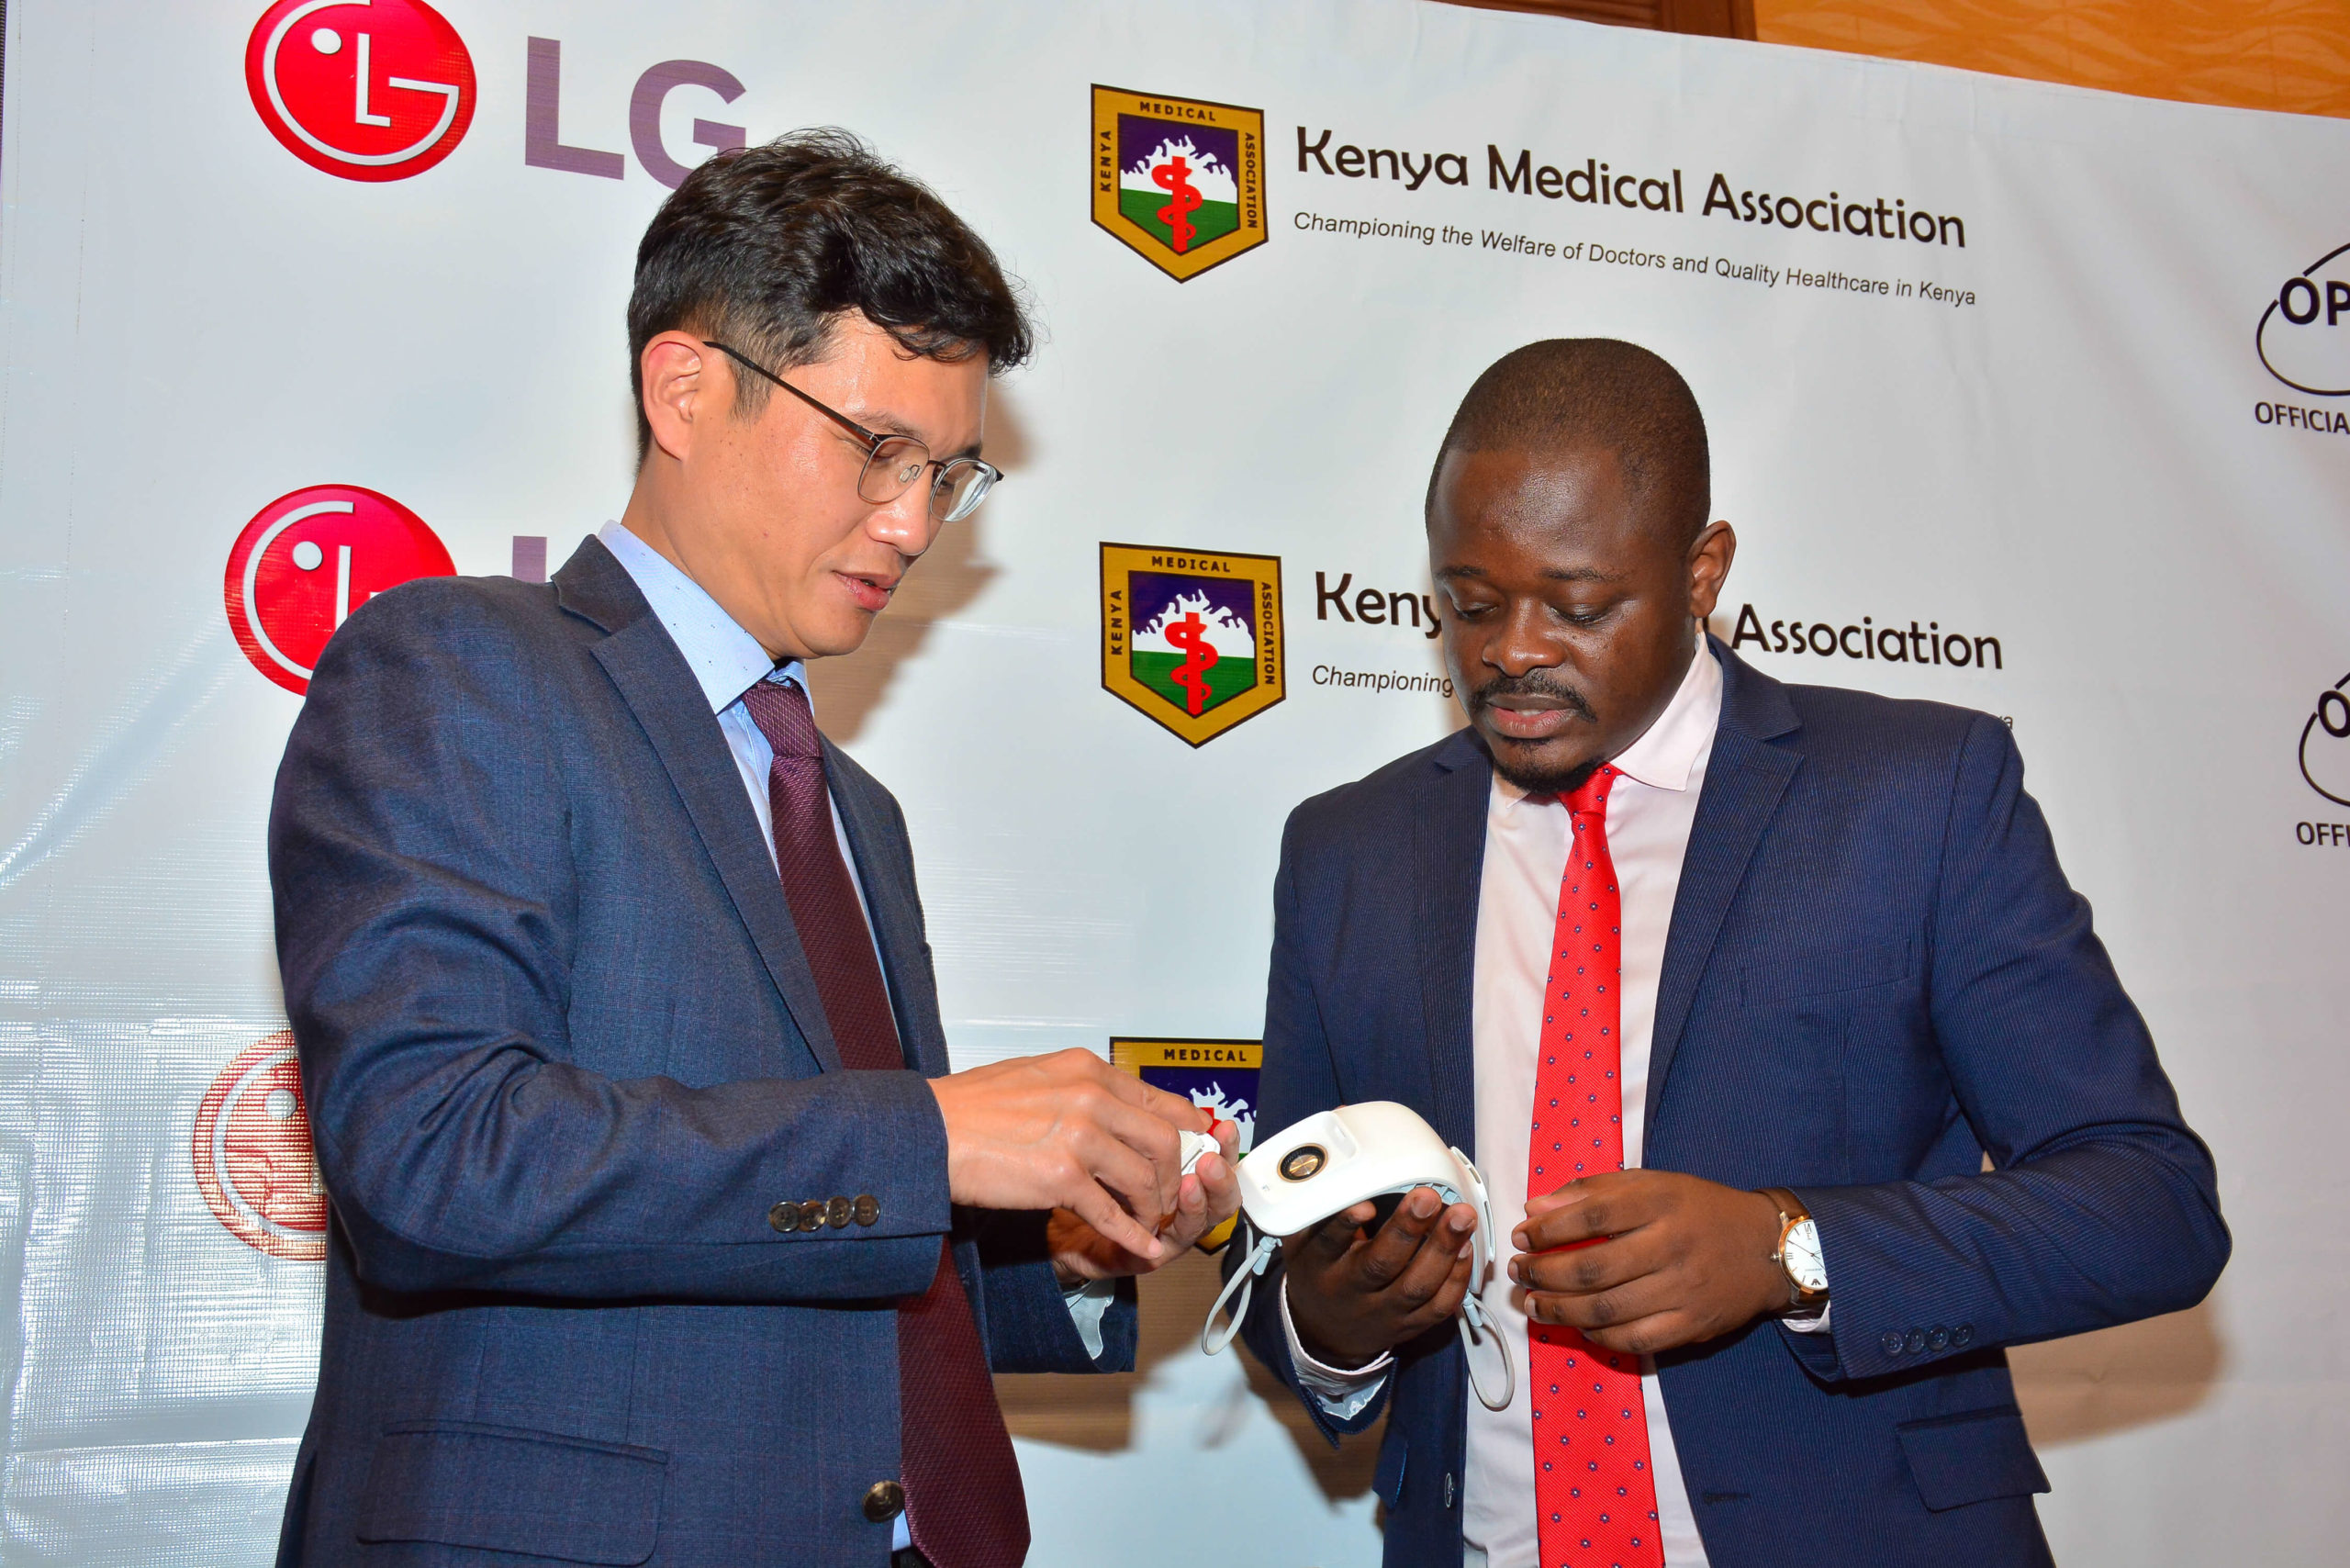 LG donates wearable air purifiers to frontline healthcare workers in Kenya